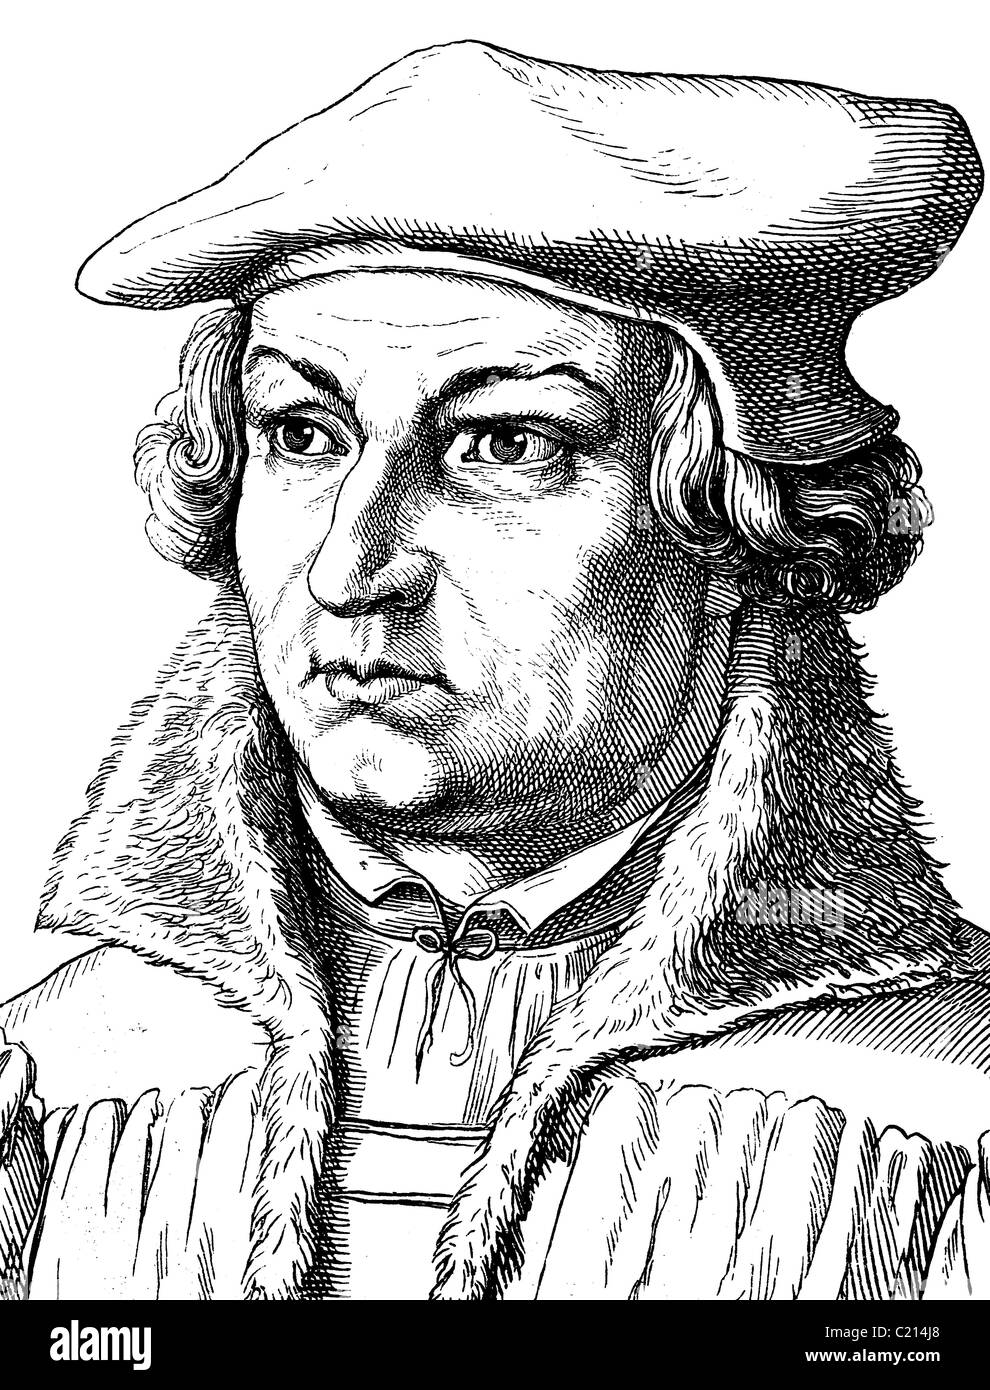 Digital improved image of Justus Jonas, 1493 - 1555, reformer and friend of Luther, portrait, historical illustration, - Stock Image